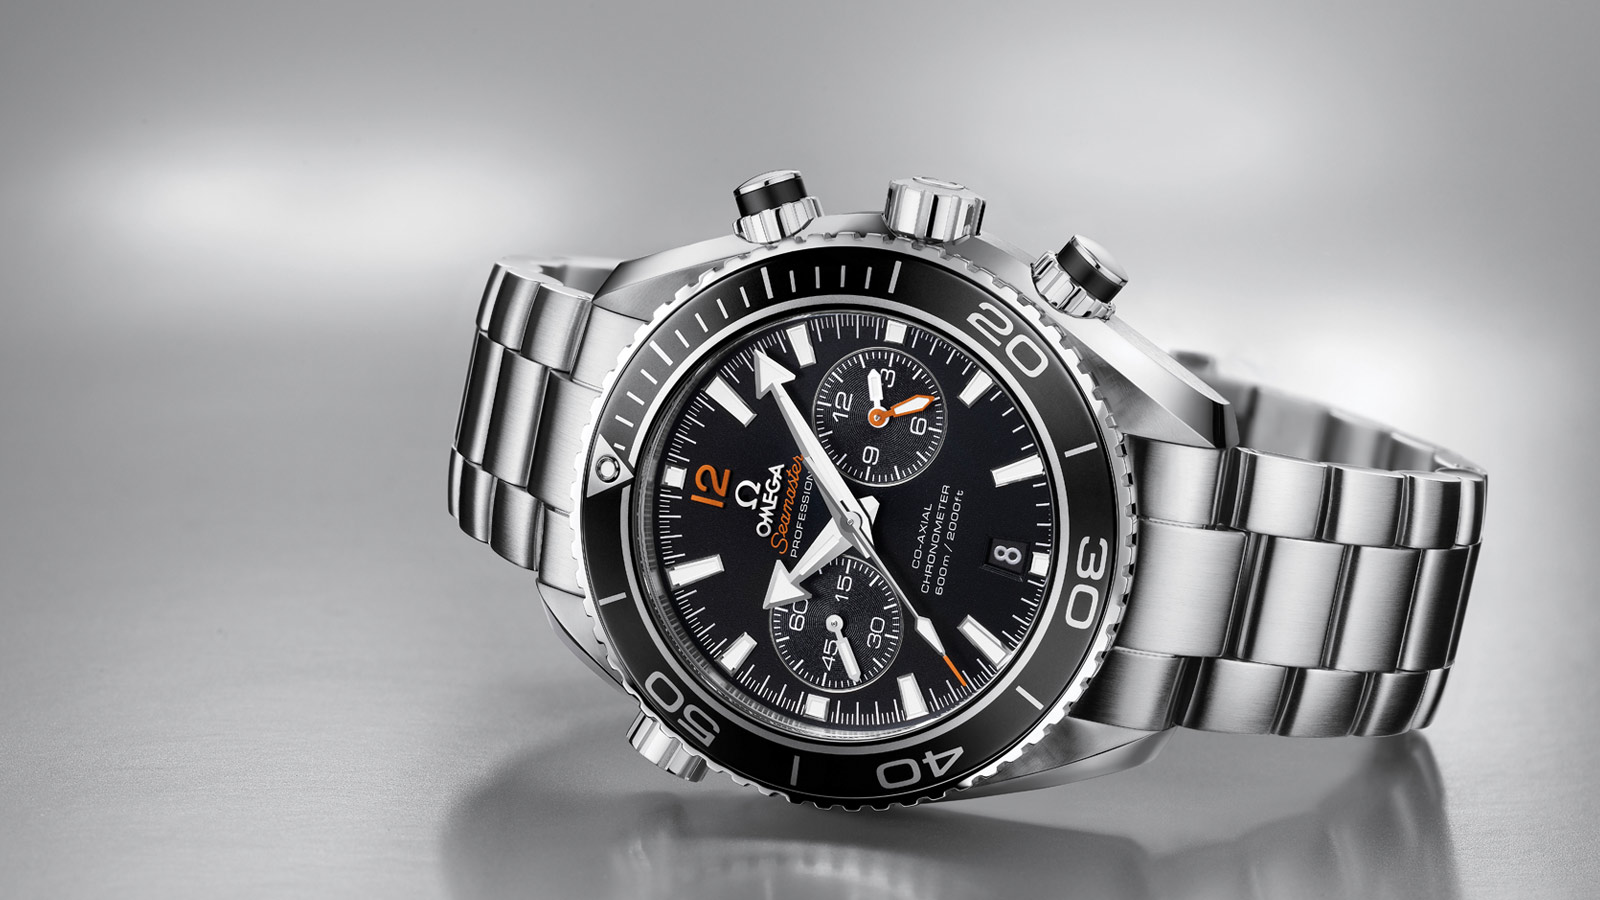 Seamaster Planet Ocean 600M Planet Ocean 600M Chronographe Omega Co‑Axial 45,5 mm - 232.30.46.51.01.003 - Afficher 1